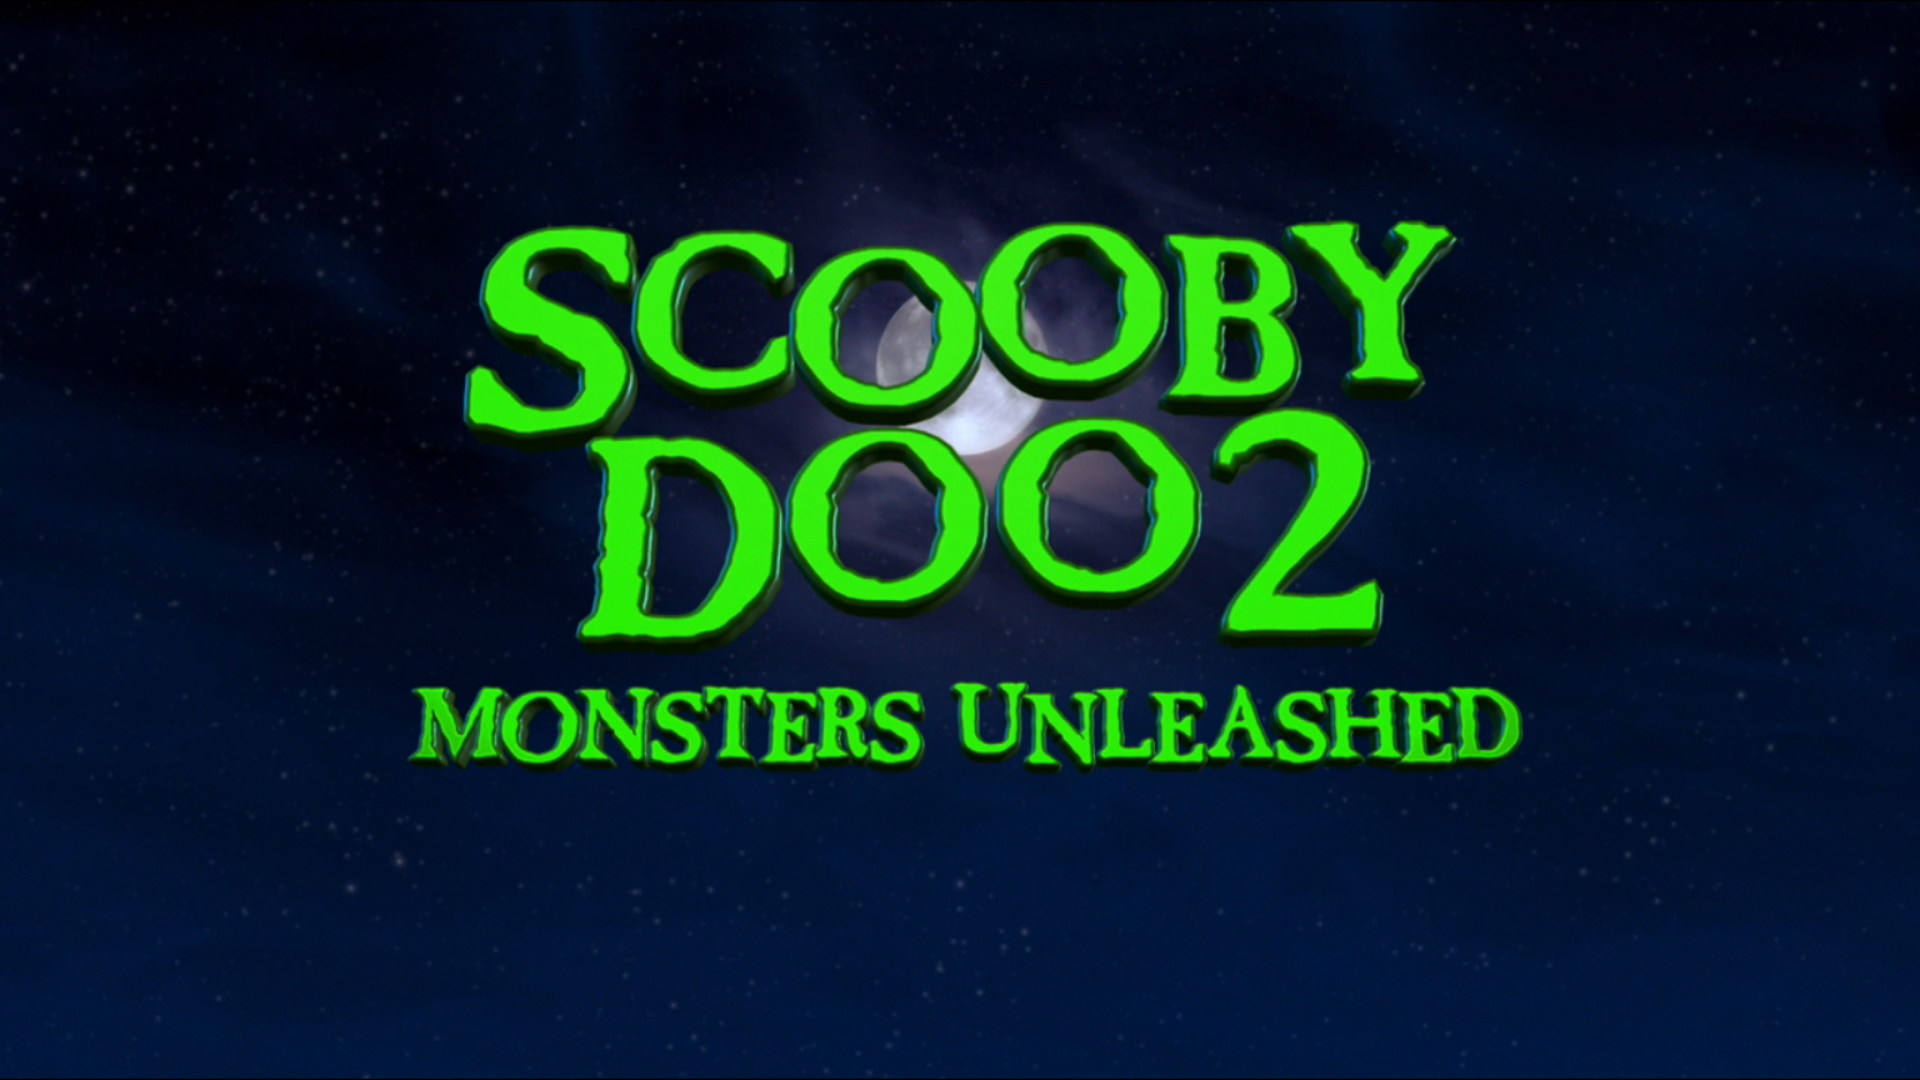 Scooby Doo 2 Monsters Unleashed Scoobypedia Fandom